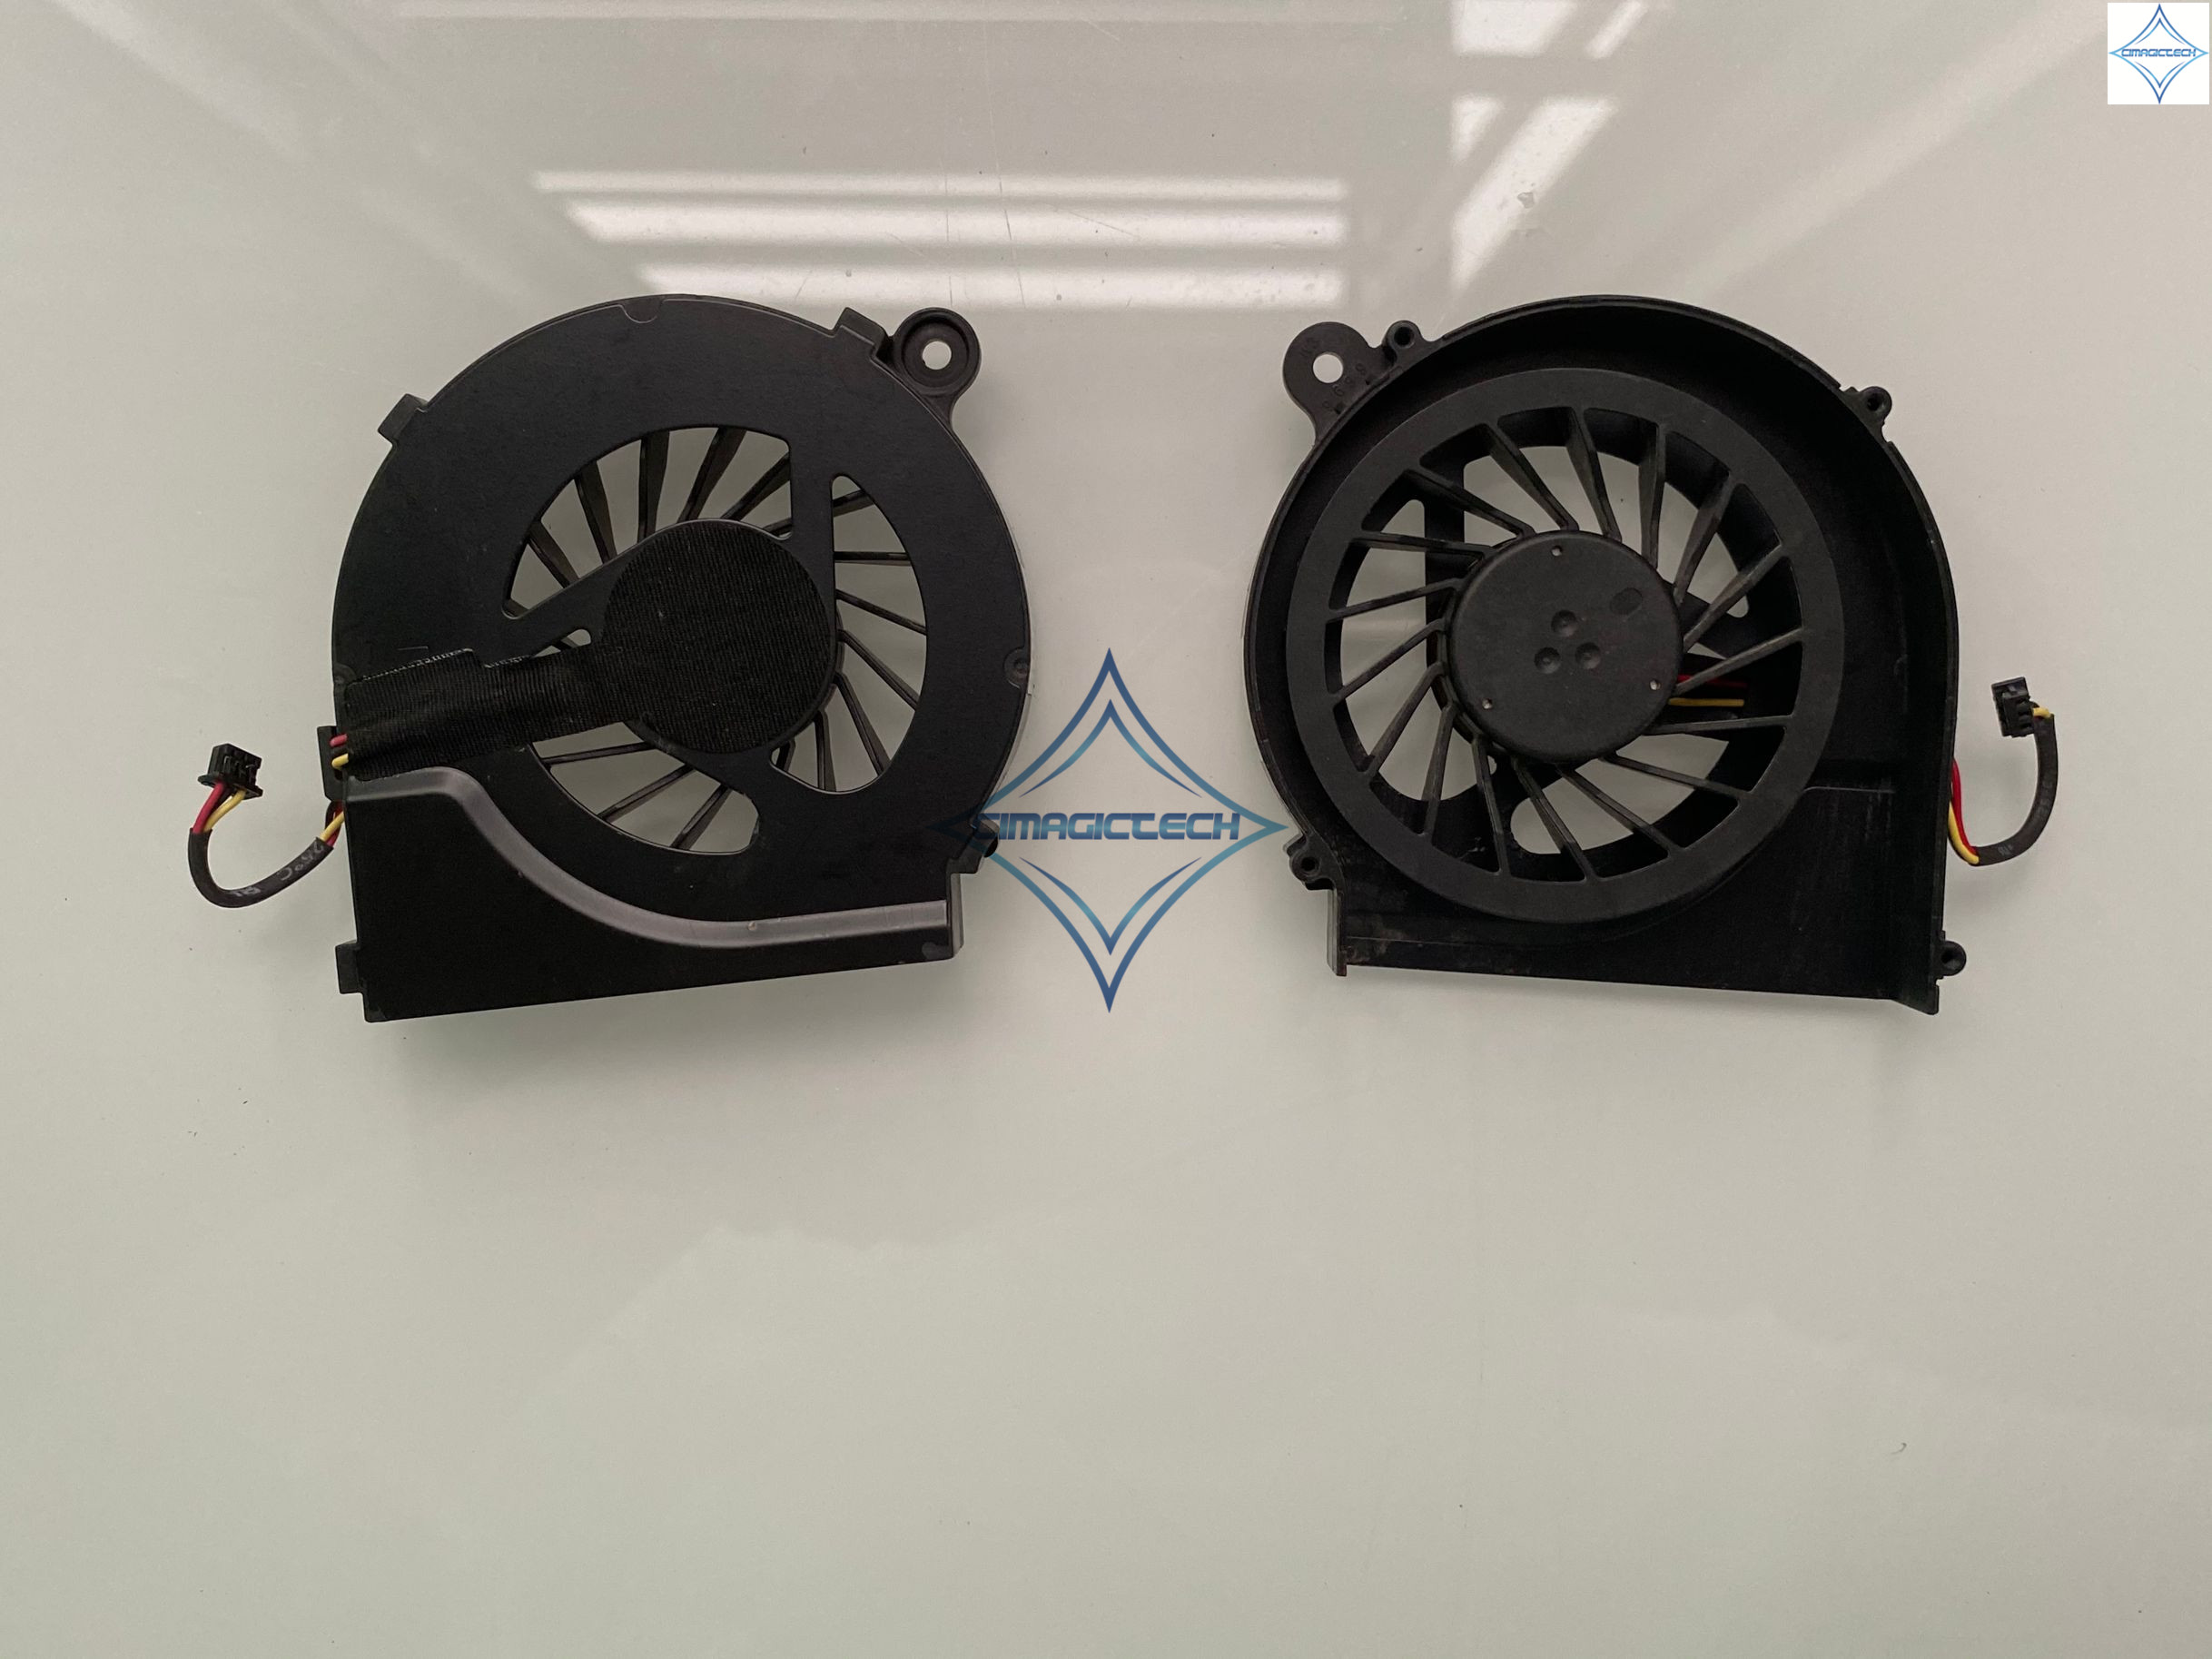 original new for HP CQ42 G4 G6 G4-1000 G6-1000 G7-1000 CQ56 G42 CQ62 G62 646578-001 DFS531105MC0T 3PIN laptop cpu cooling fan image